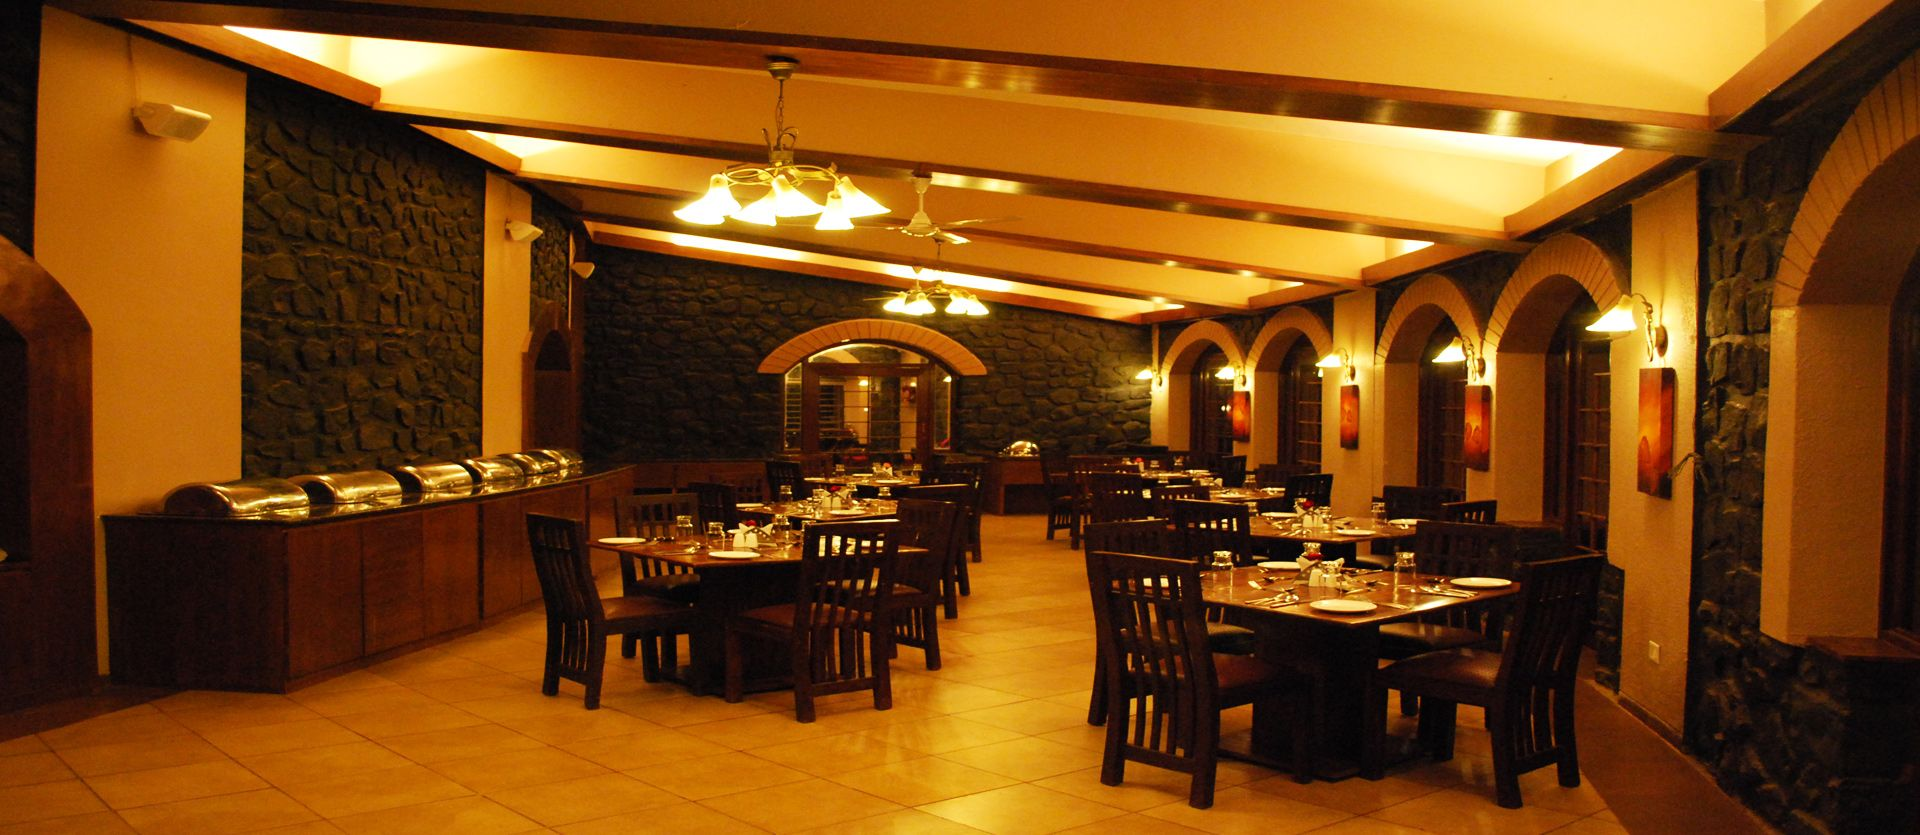 resorts Resorts near Pune - Mantra Resorts